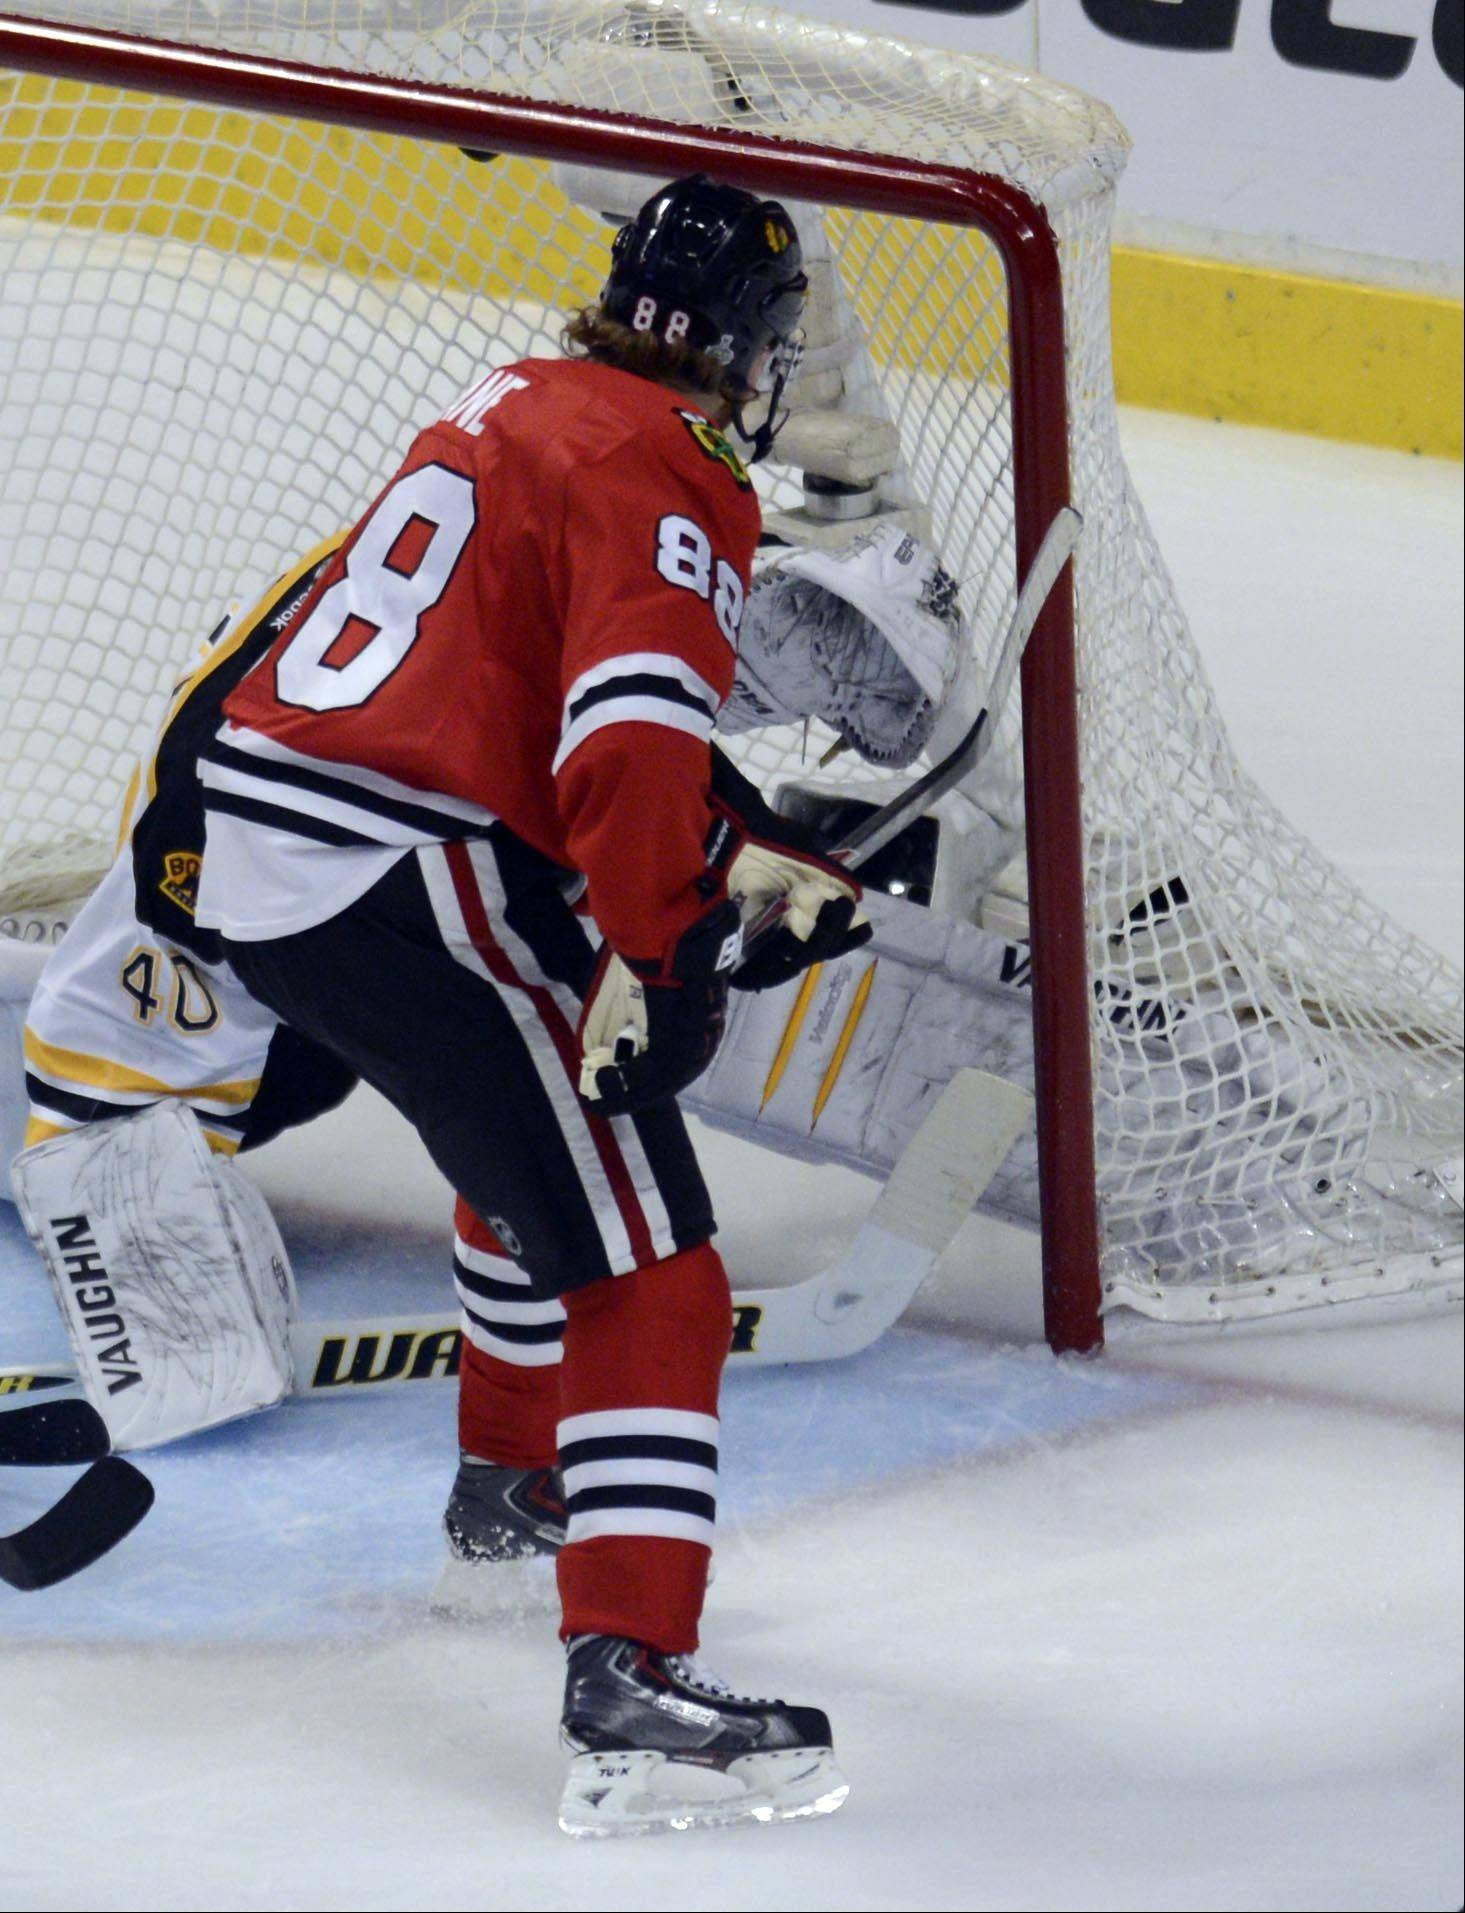 Chicago Blackhawks right wing Patrick Kane sees his second goal in the back of the net Saturday in Game 5 of the Stanley Cup Finals at the United Center in Chicago.